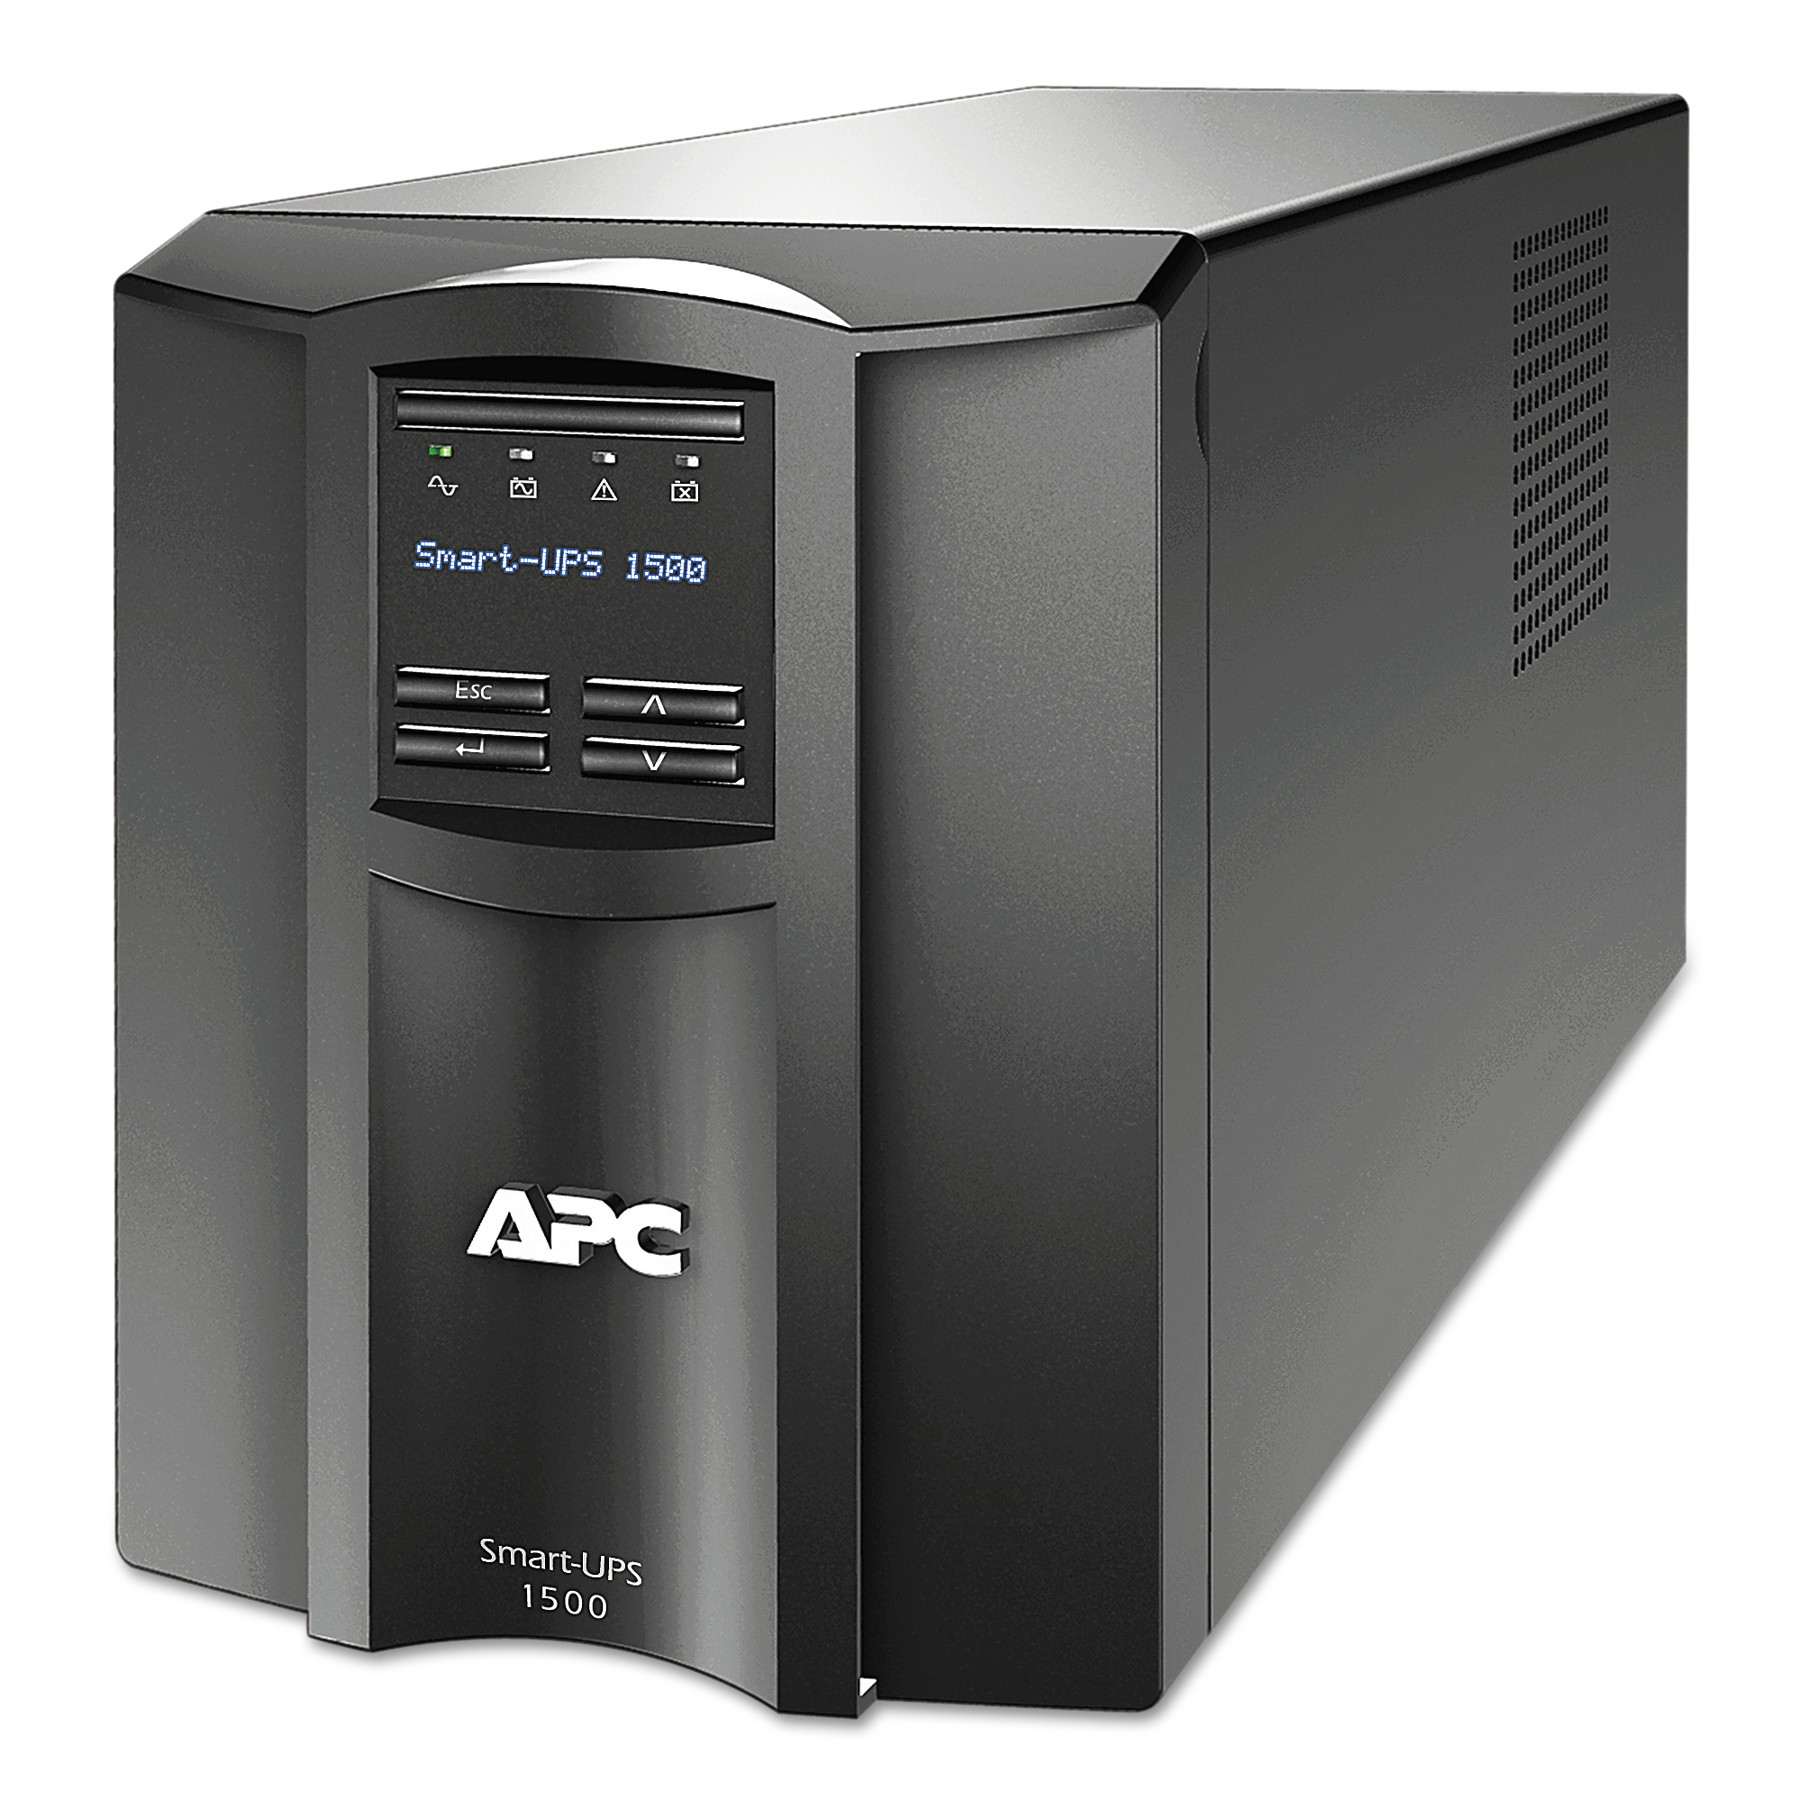 APC SMT1500 Smart-UPS LCD Backup System, 8 Outlets, 1500 VA, 459 J by APC